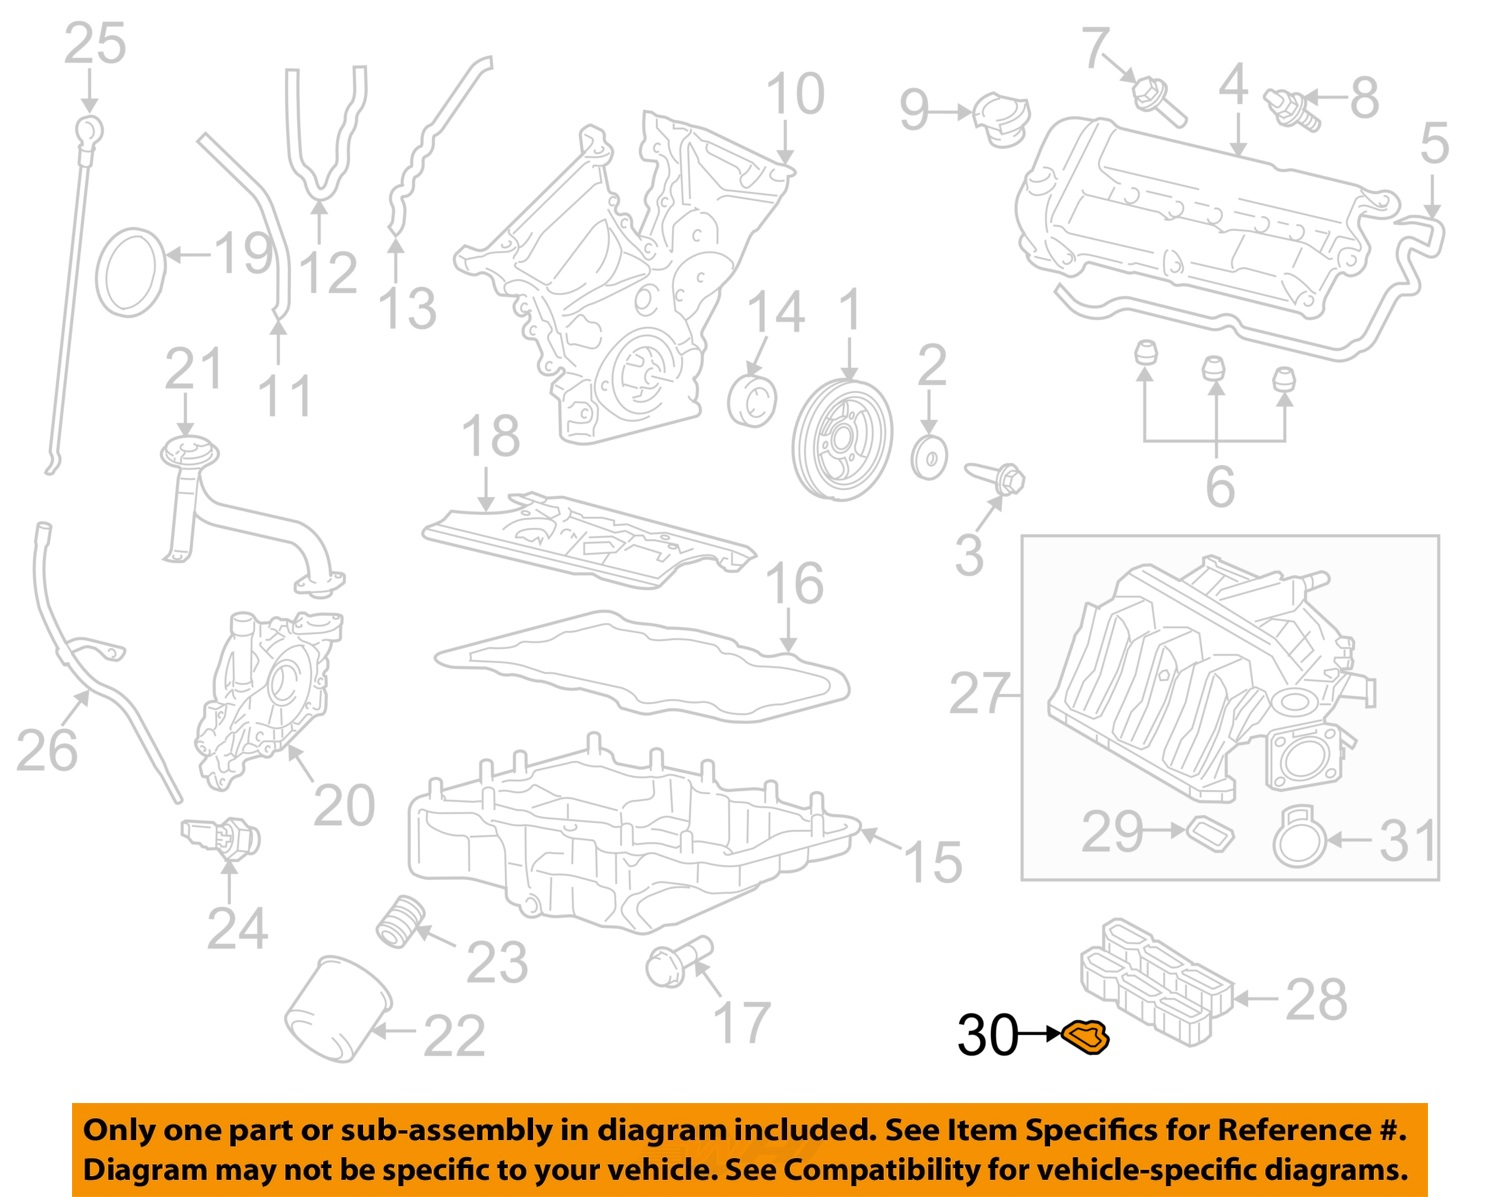 hight resolution of  30 on diagram only genuine oe factory original item